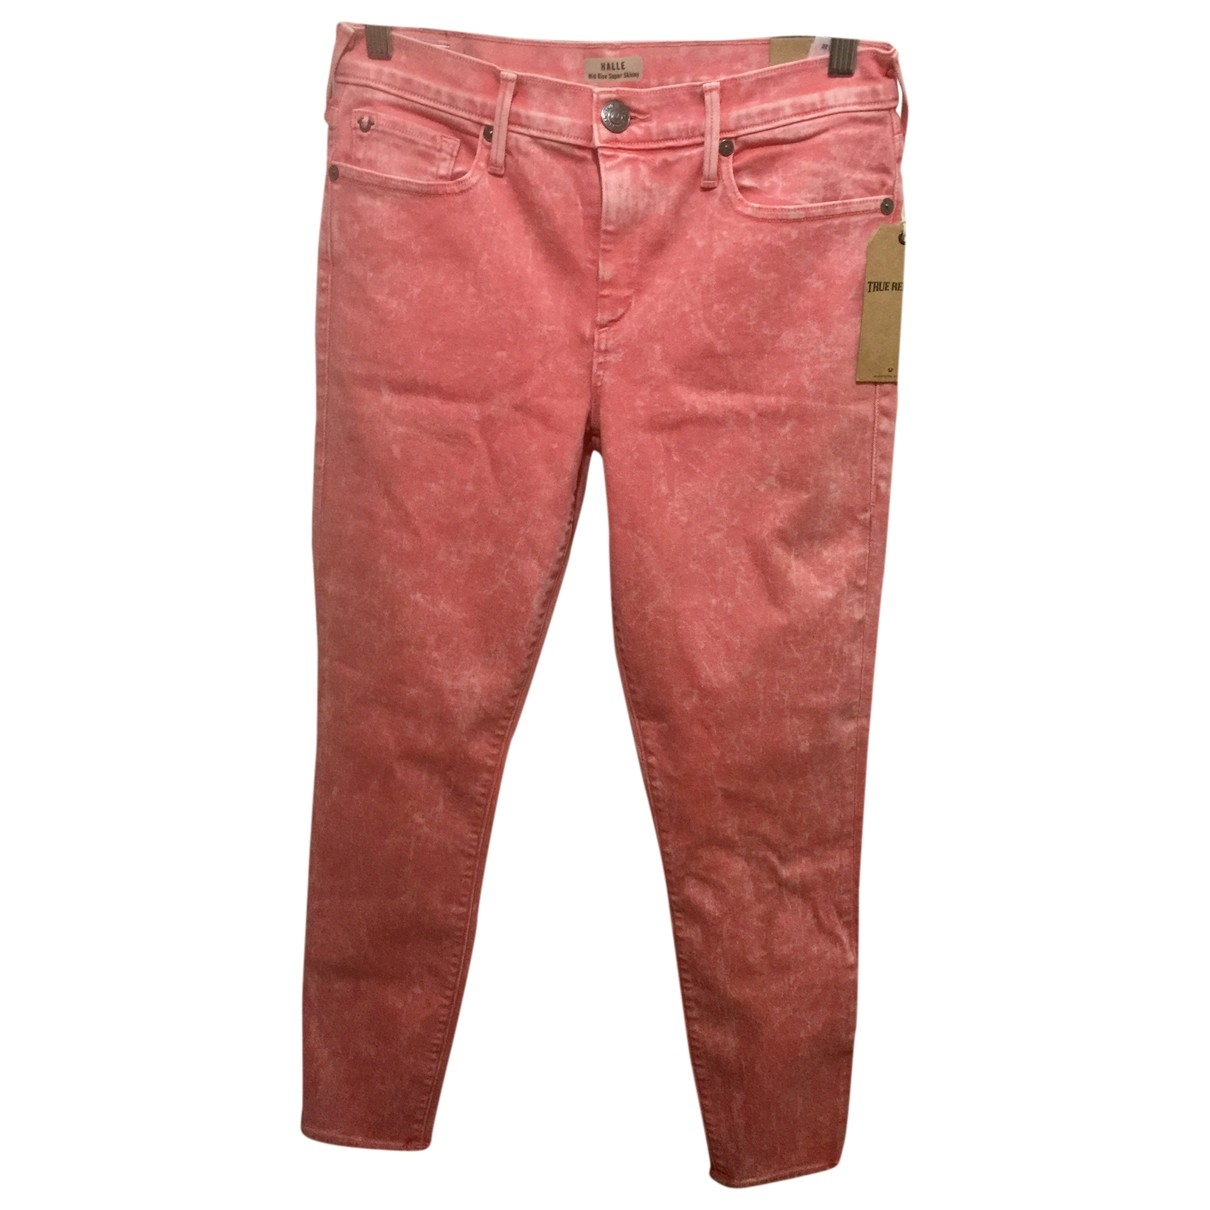 True Religion \N Pink Cotton - elasthane Jeans for Women 29 US